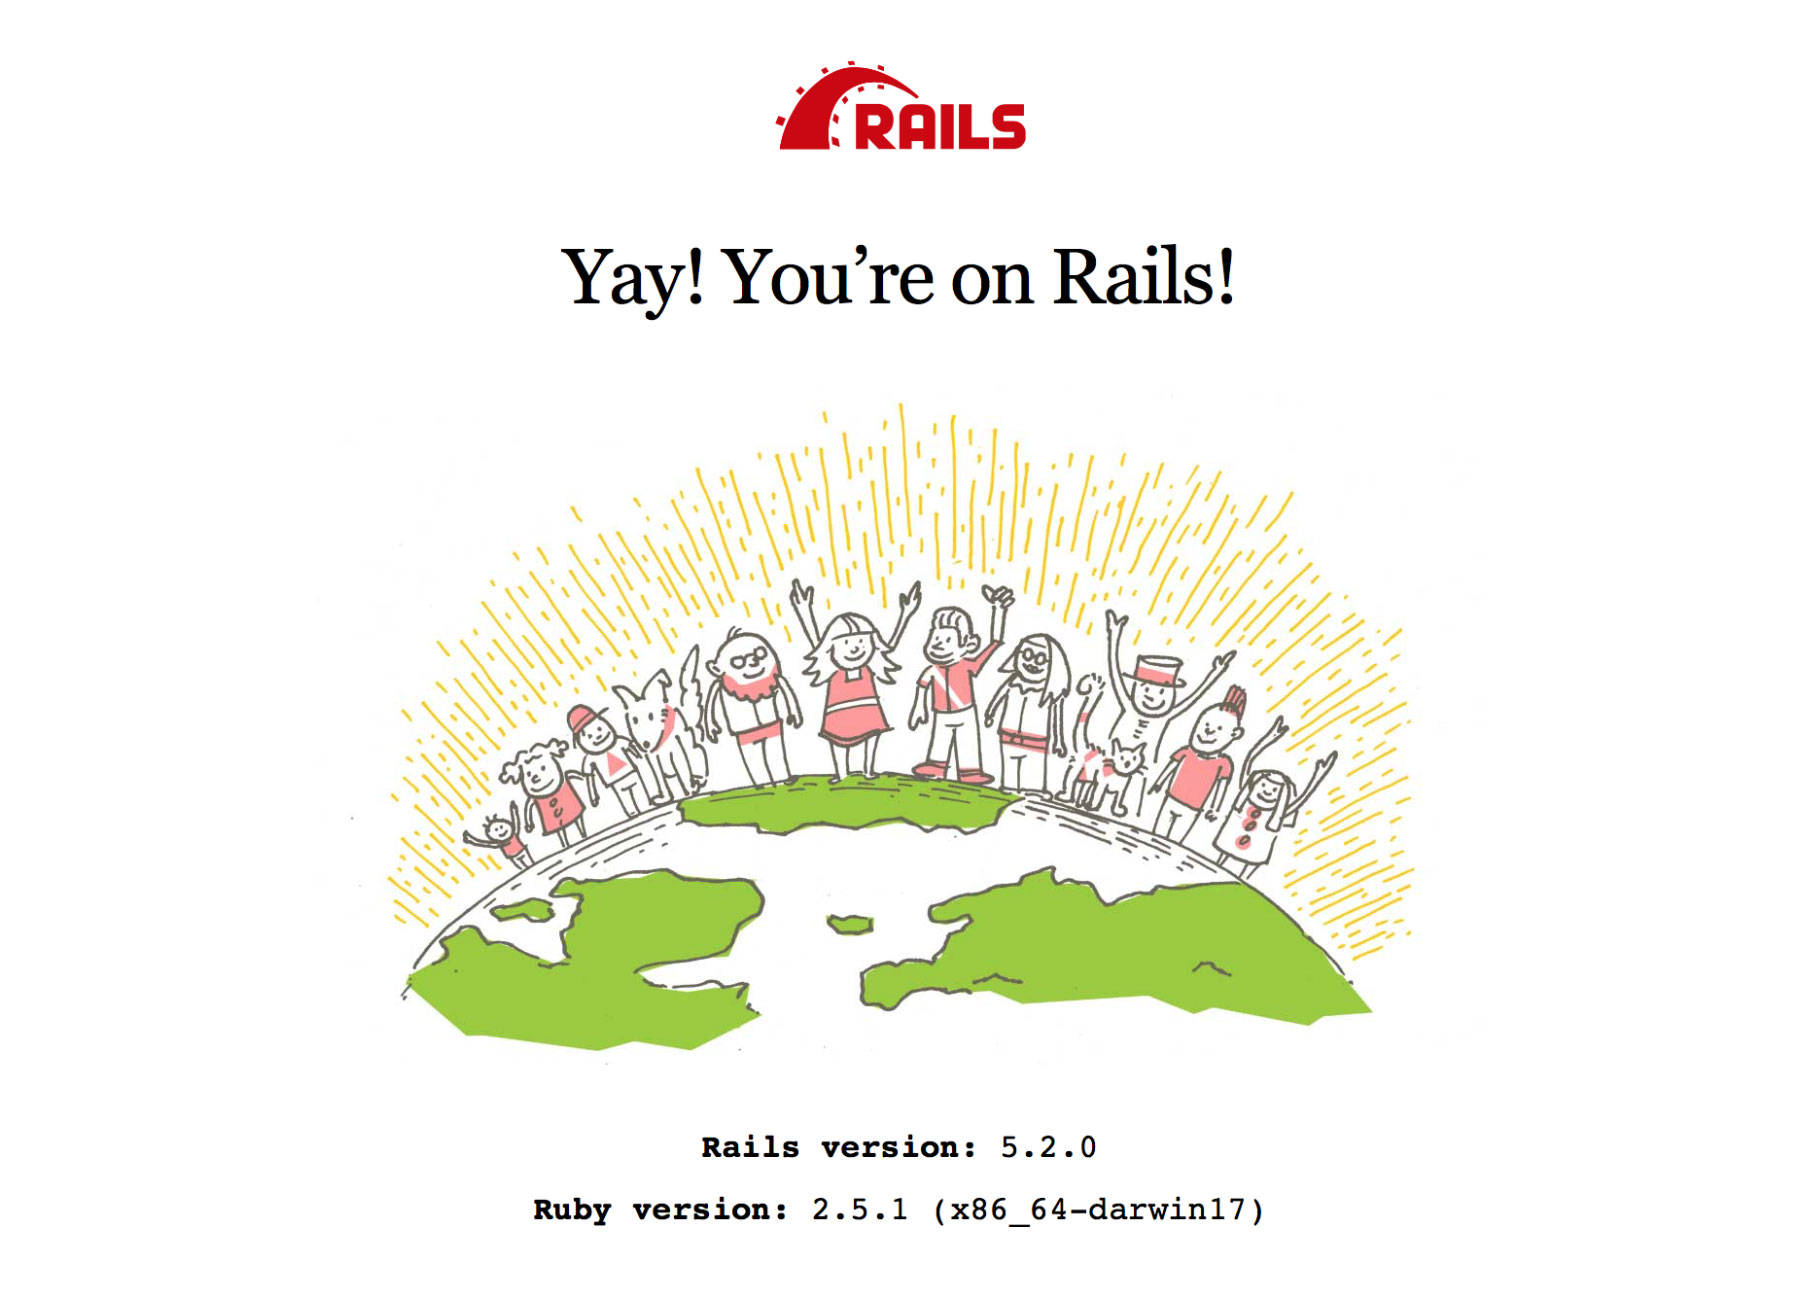 The initial Rails page, showing version 5.2.0